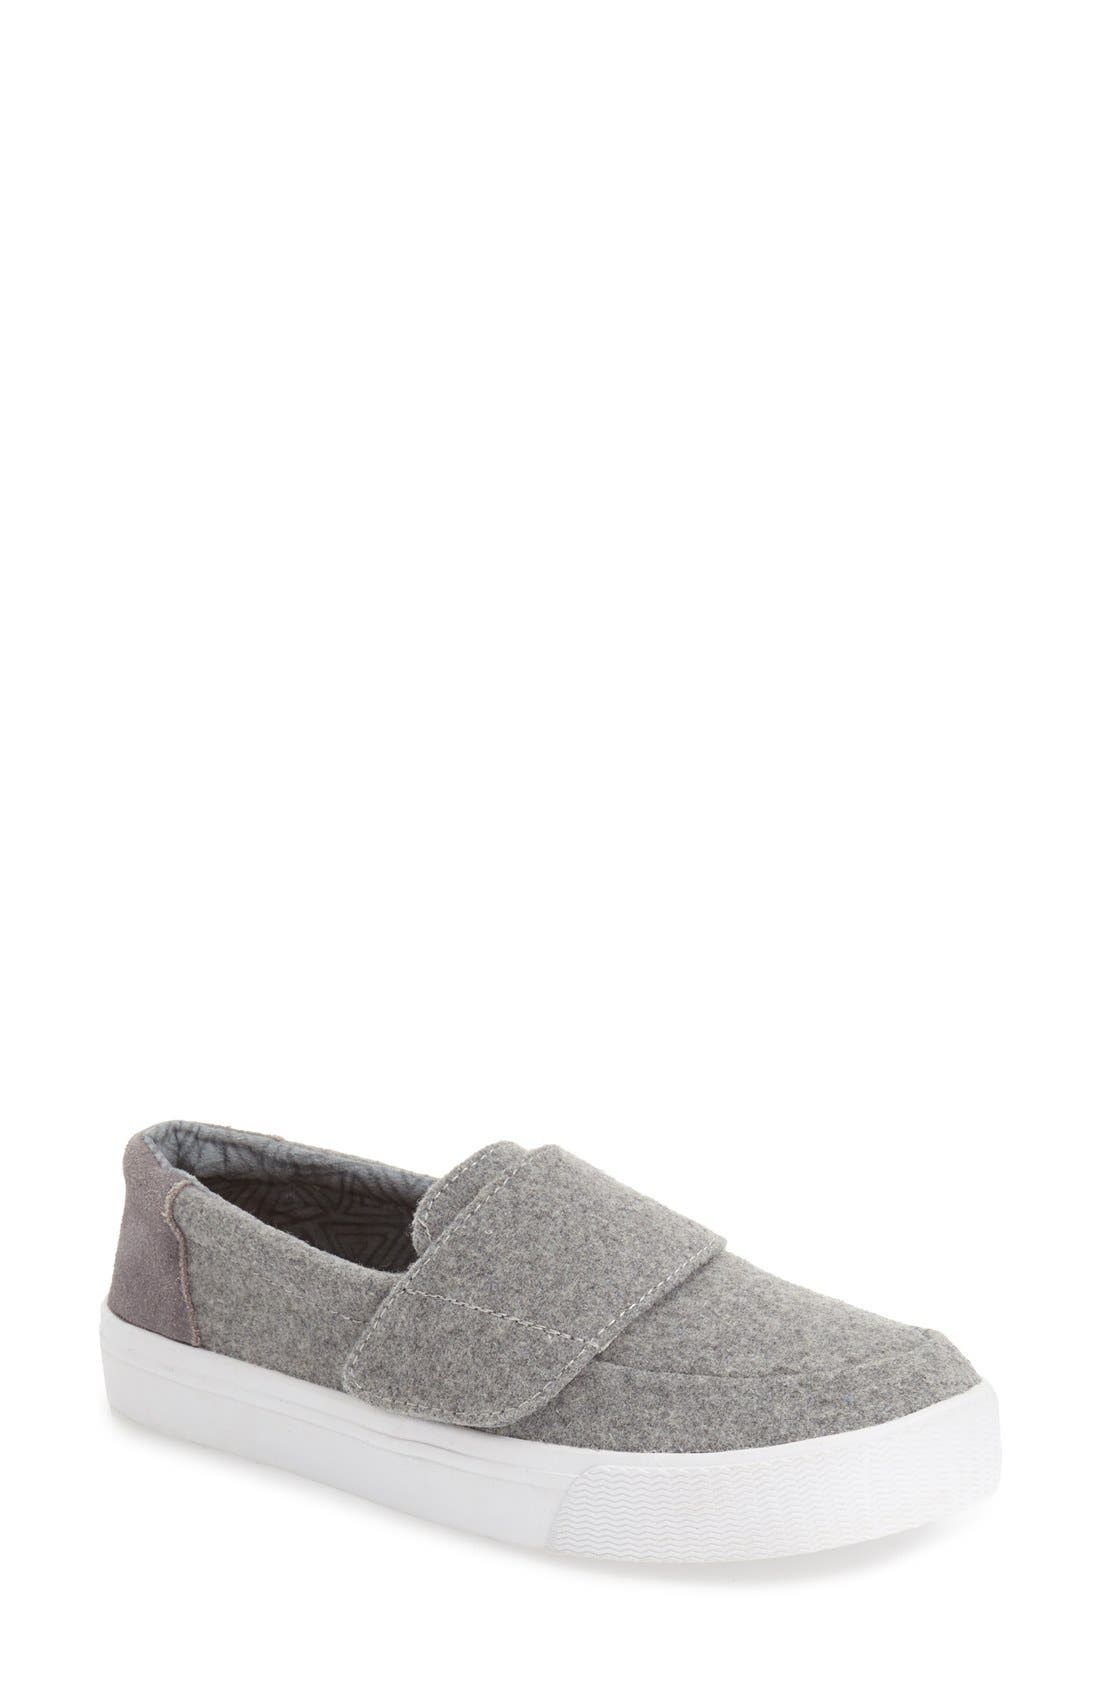 Main Image - TOMS 'Altair' Felt Suede Slip On (Women)